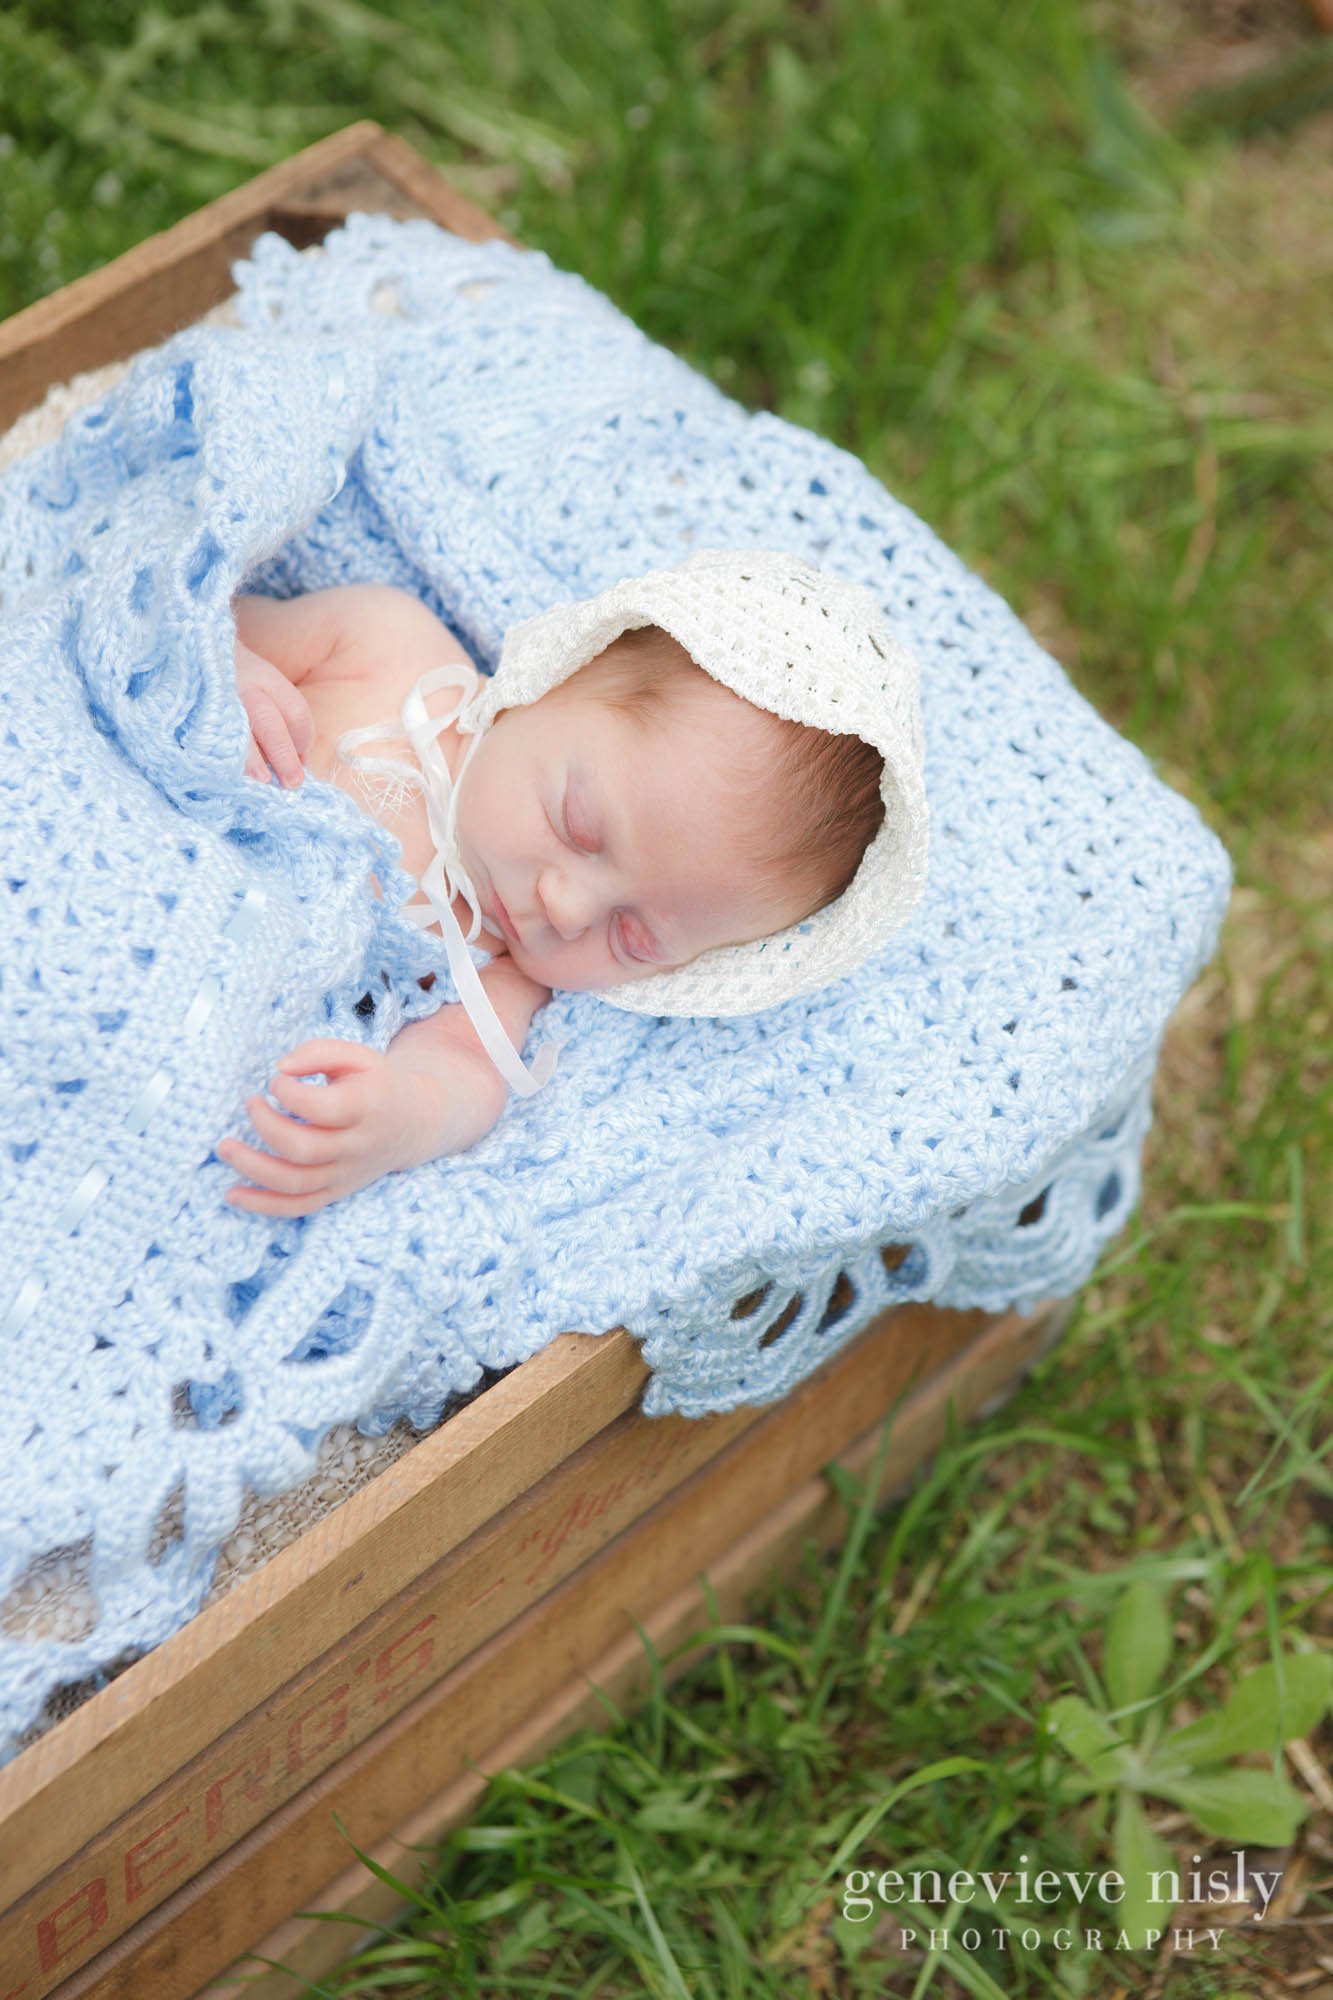 Baby, Copyright Genevieve Nisly Photography, Family, Portraits, Spring